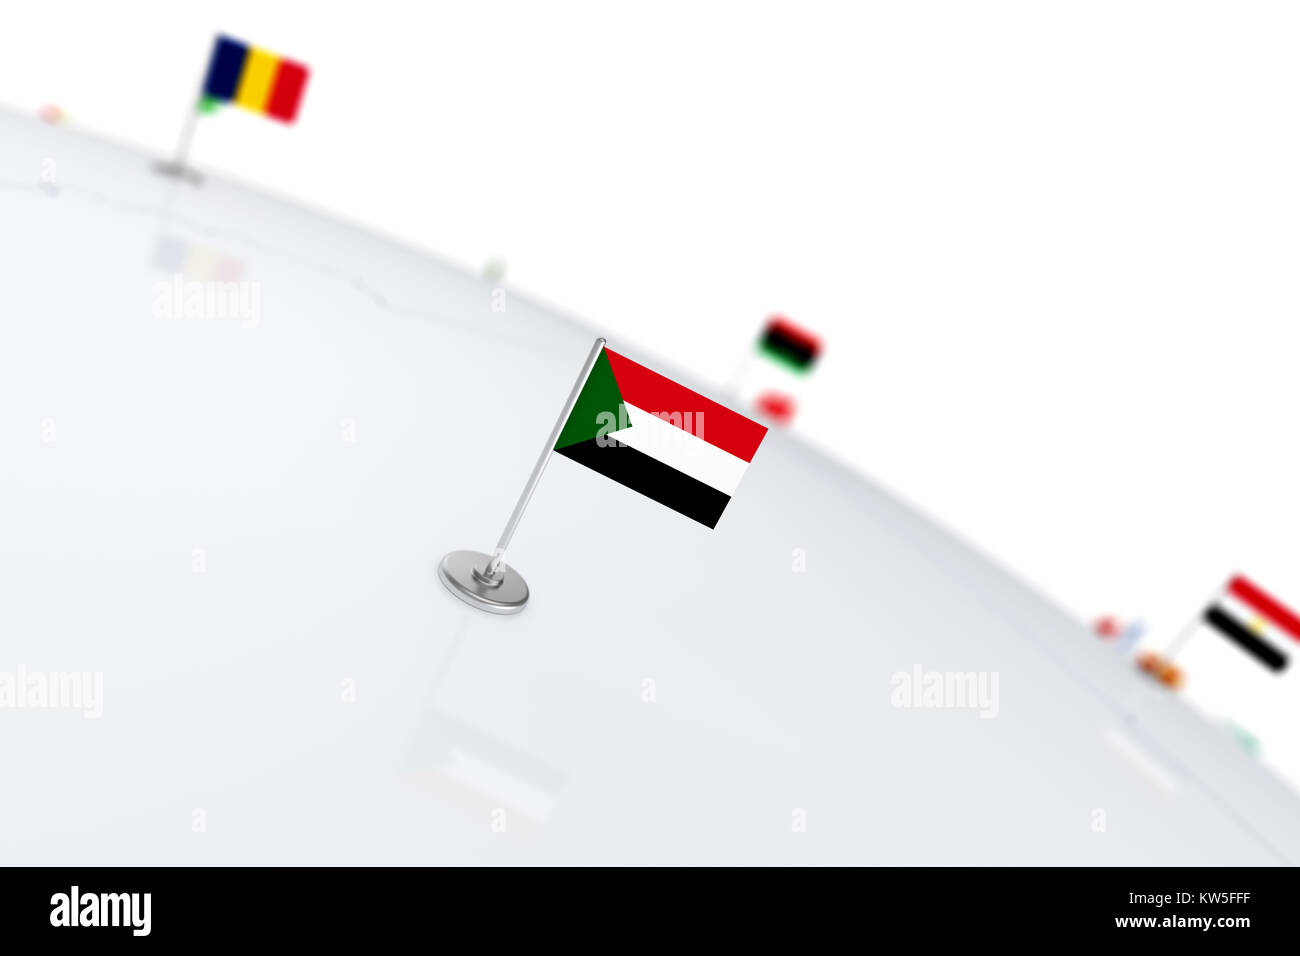 Sudan flag country flag with chrome flagpole on the world map sudan flag country flag with chrome flagpole on the world map with neighbors countries borders 3d illustration rendering flag gumiabroncs Gallery